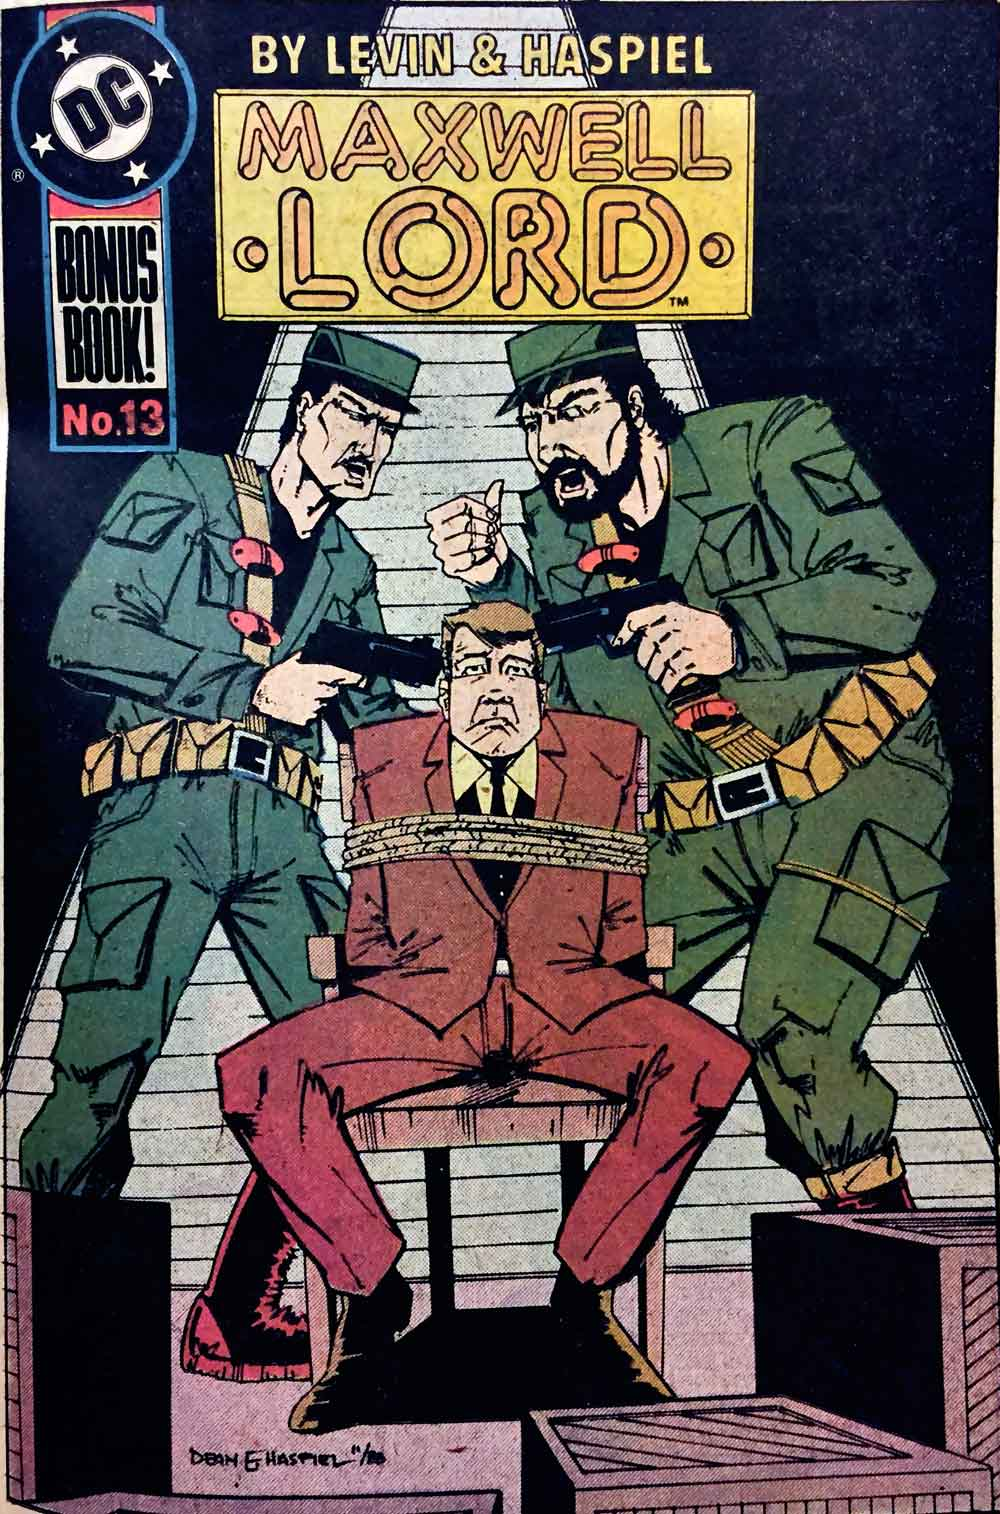 Justice League International #24 David Levin and Dean Haspiel